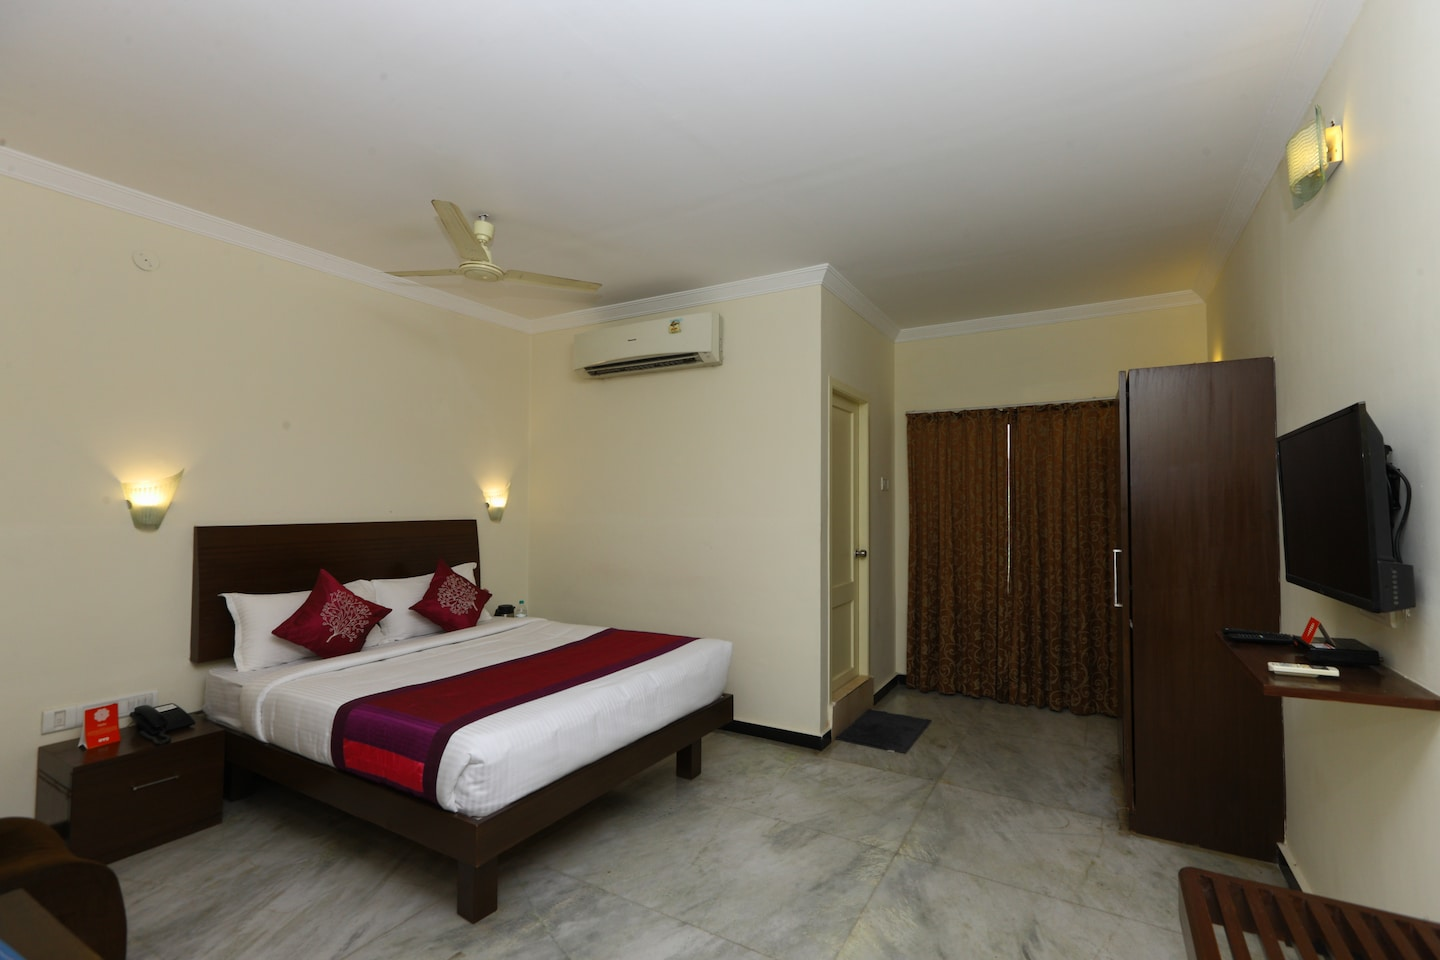 OYO Flagship Near US Consulate Chennai Book OYO Rooms - Us consulate chennai map